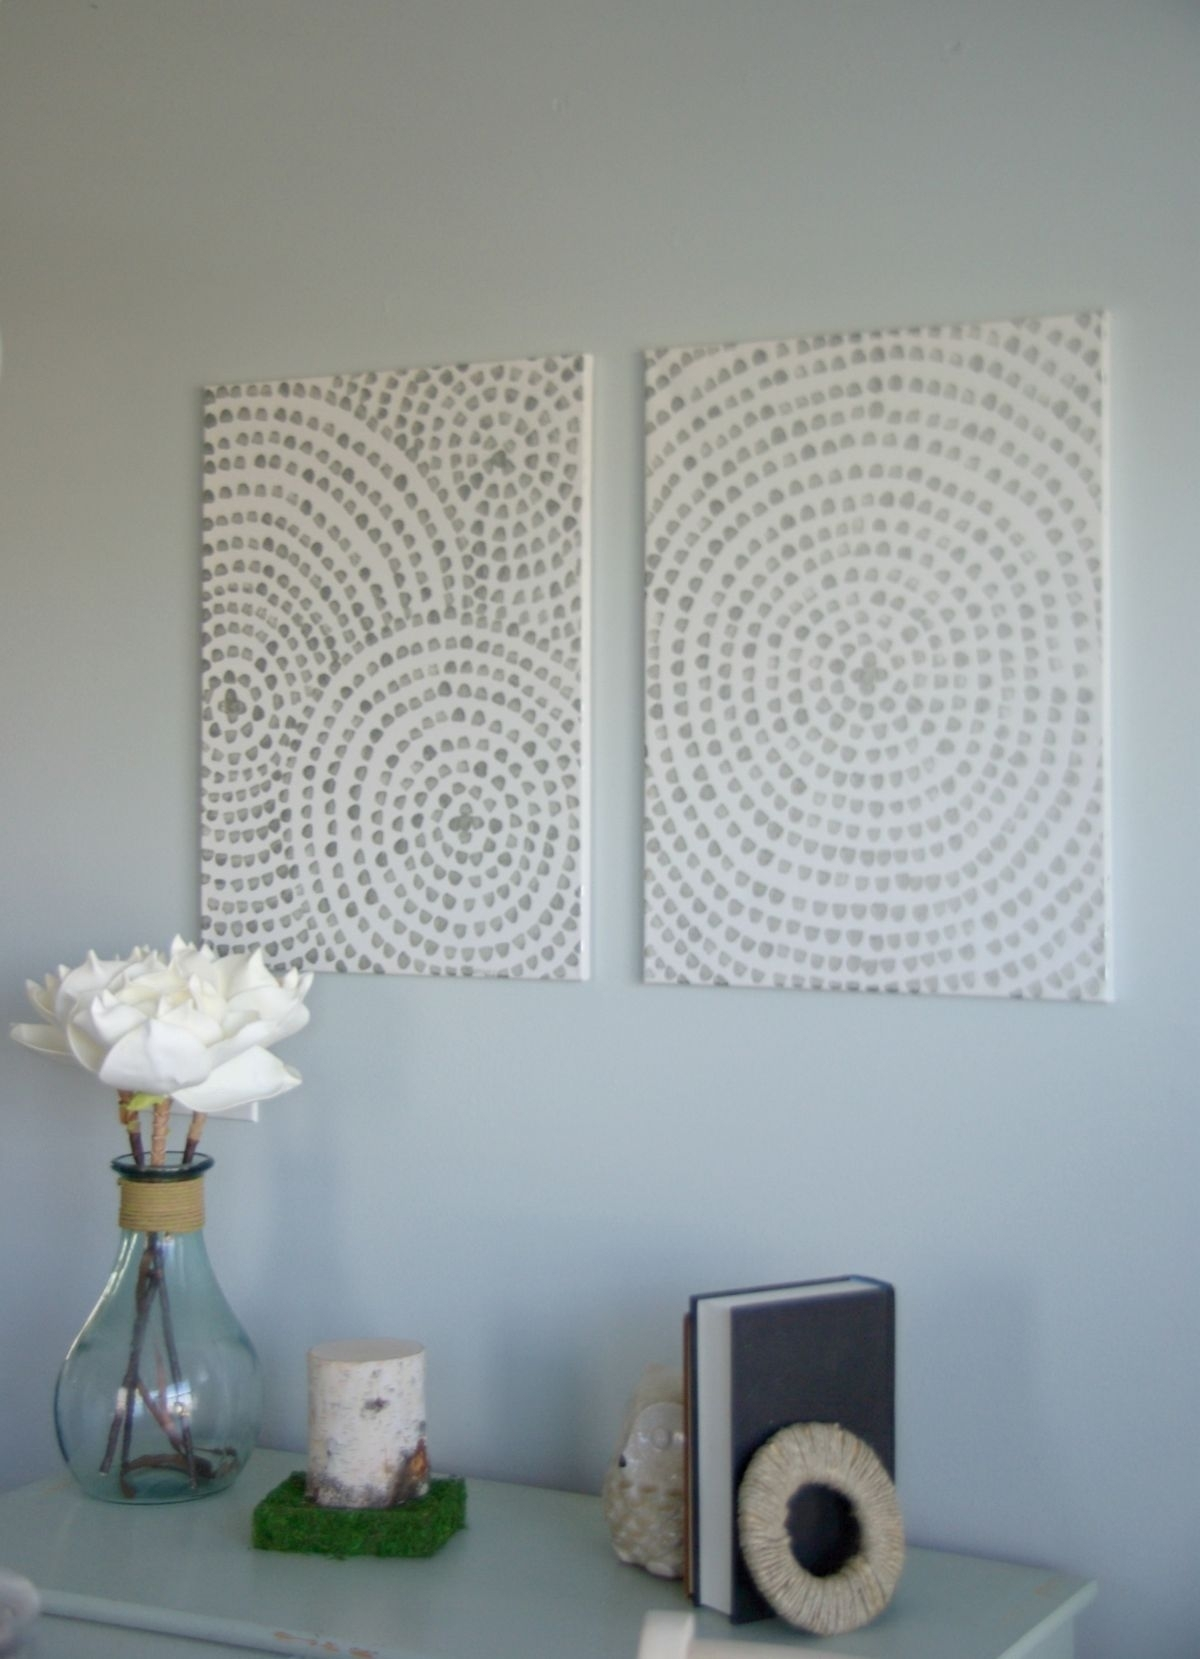 Diy Canvas Wall Art – A Low Cost Way To Add Art To Your Home | My Inside Most Recently Released Gray Canvas Wall Art (Gallery 9 of 20)